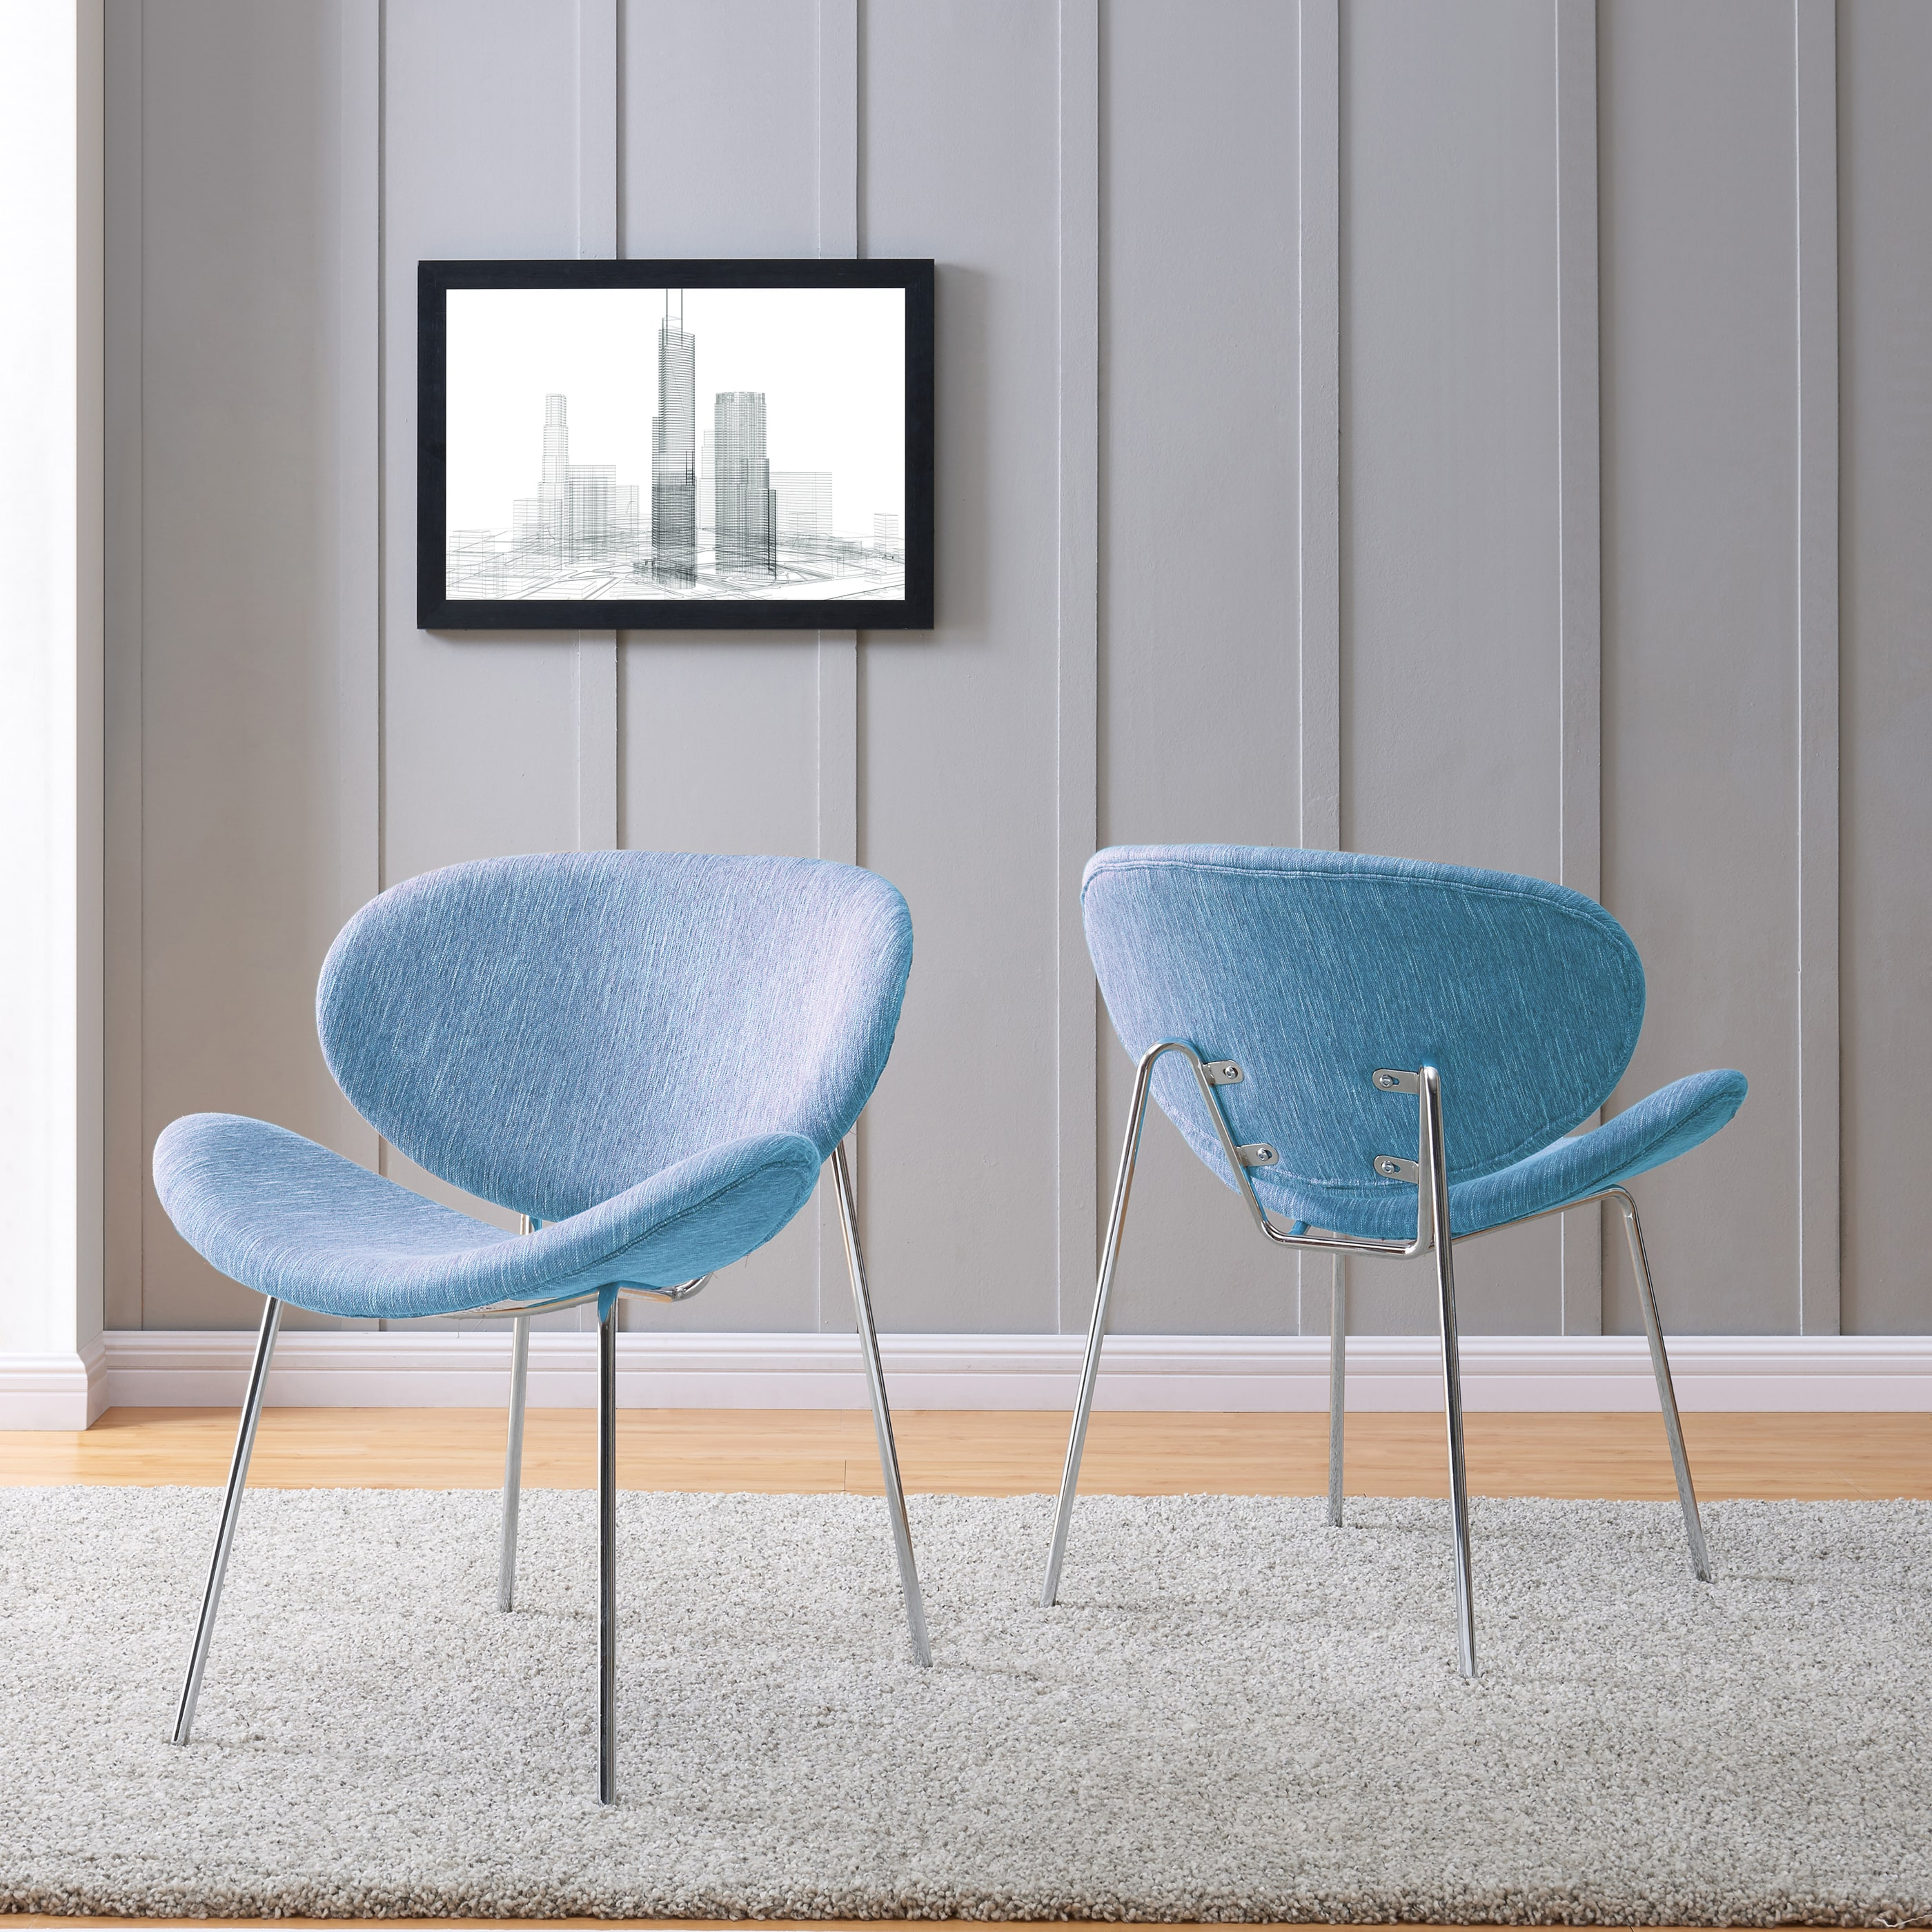 Handy Living Peter Blue Strie Modern Armless Chairs With Chrome Legs (Set  Of 2)   Free Shipping Today   Overstock   24225763